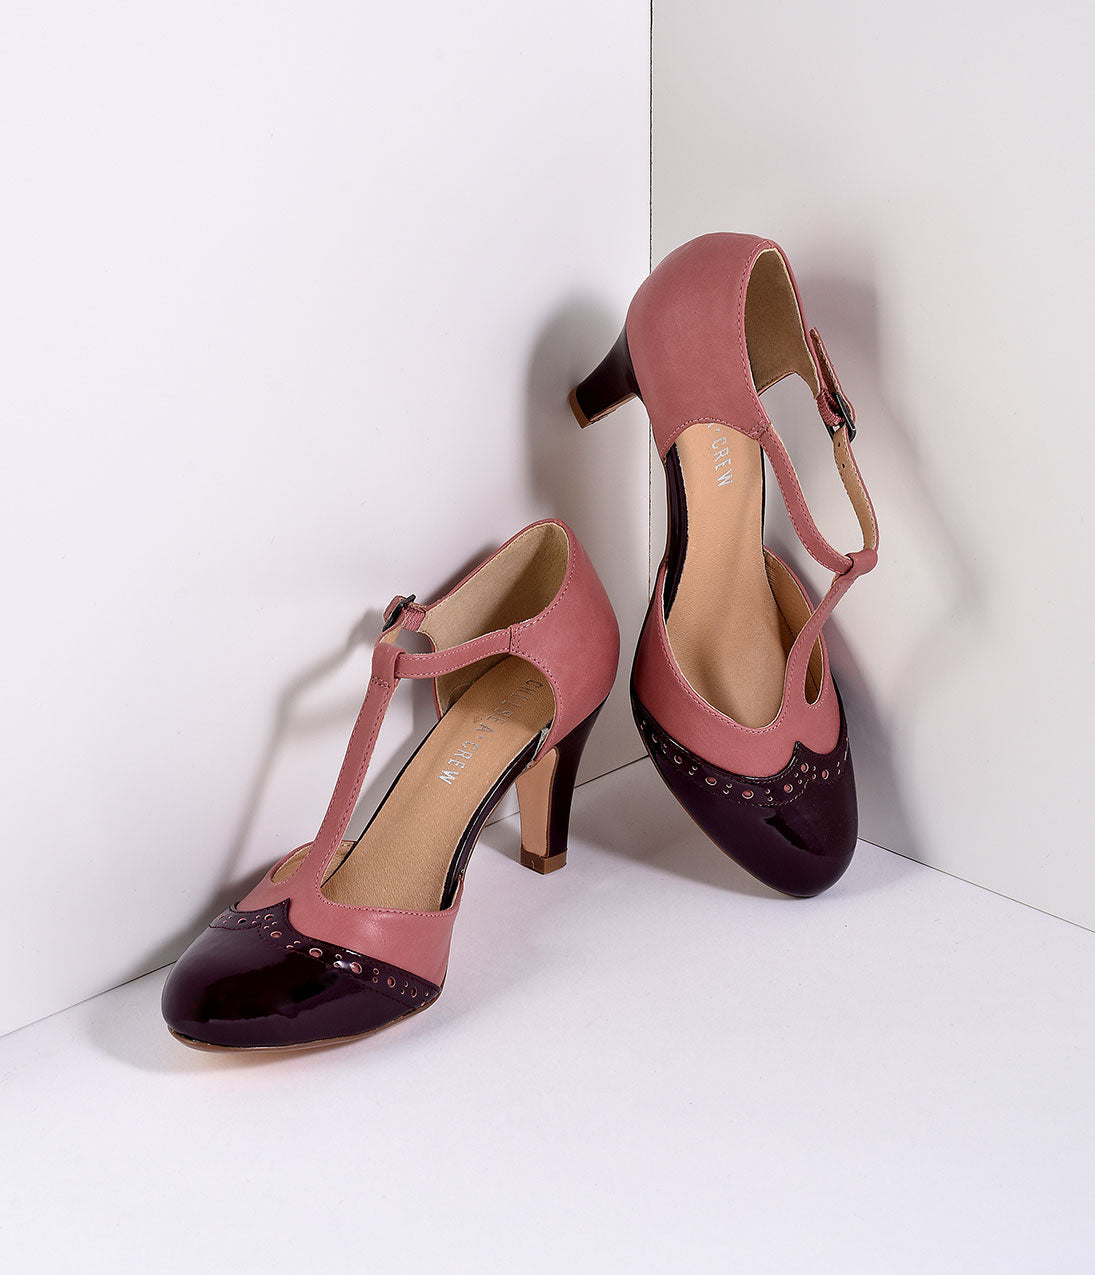 Rockabilly Shoes- Heels, Pumps, Boots, Flats Mauve Pink  Burgundy Gatsby T-Strap Pumps $64.00 AT vintagedancer.com